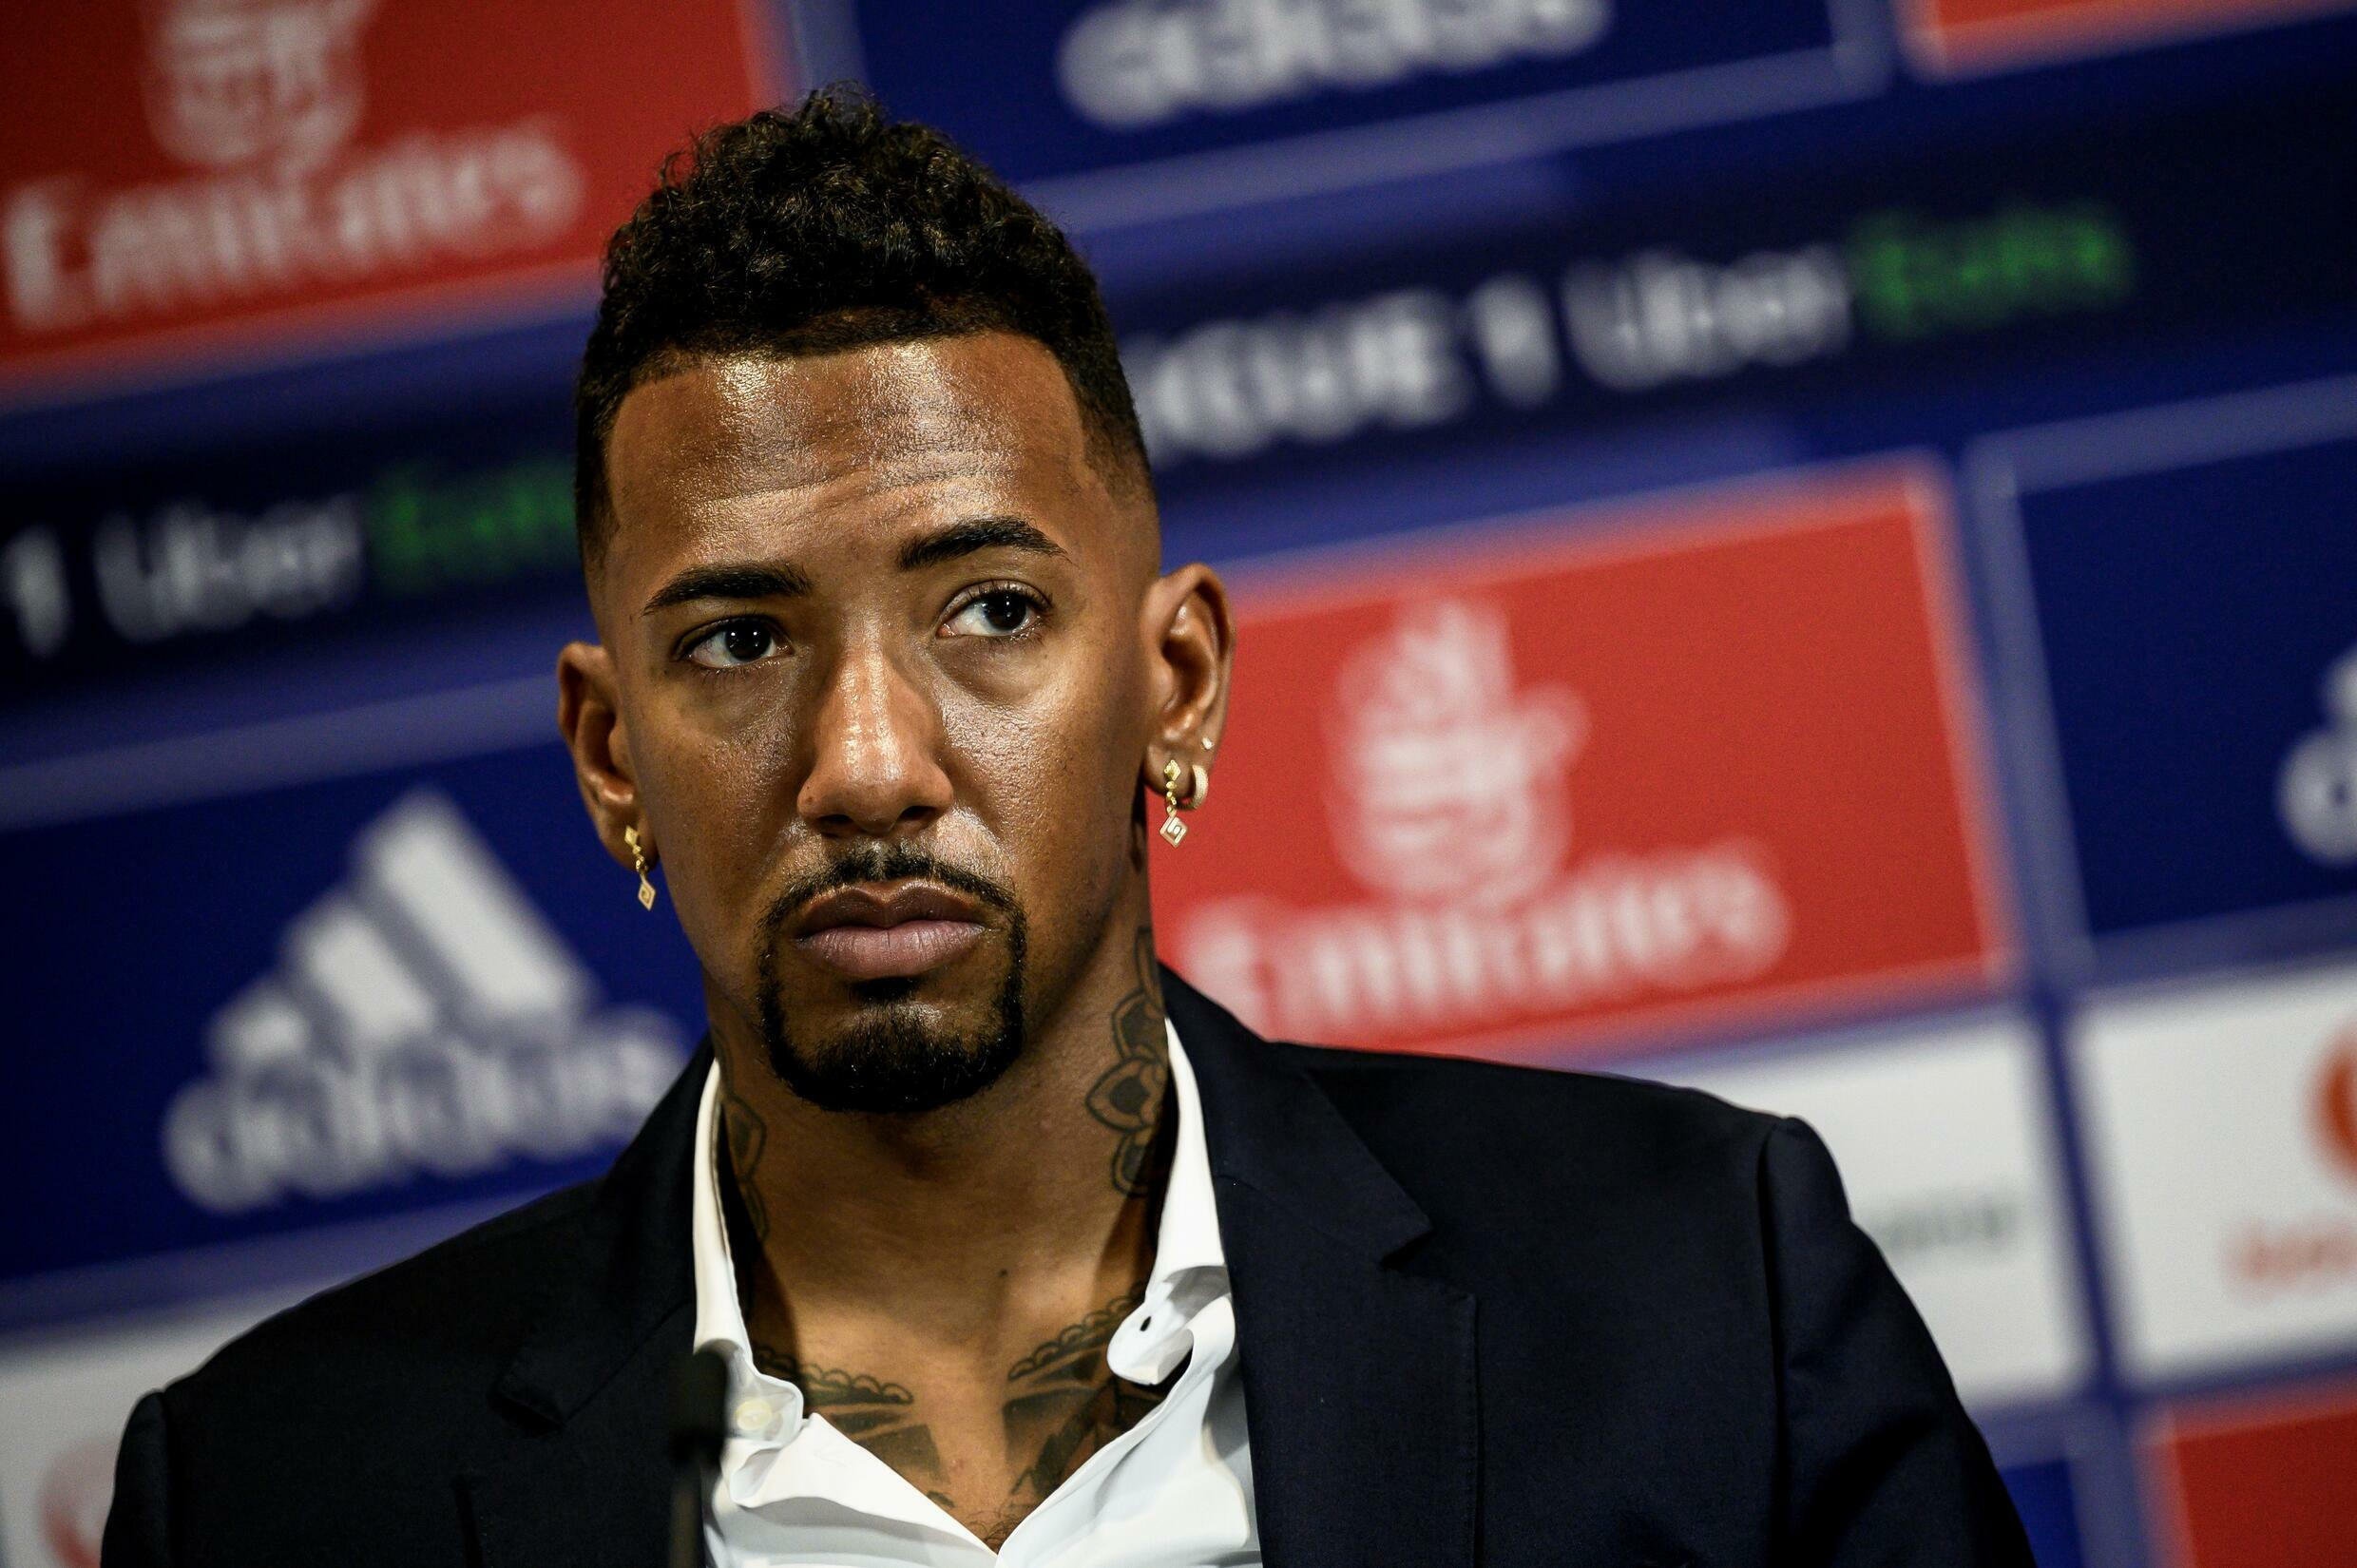 Germany defender Jerome Boateng will face allegations of assault in a Munich court on Thursday